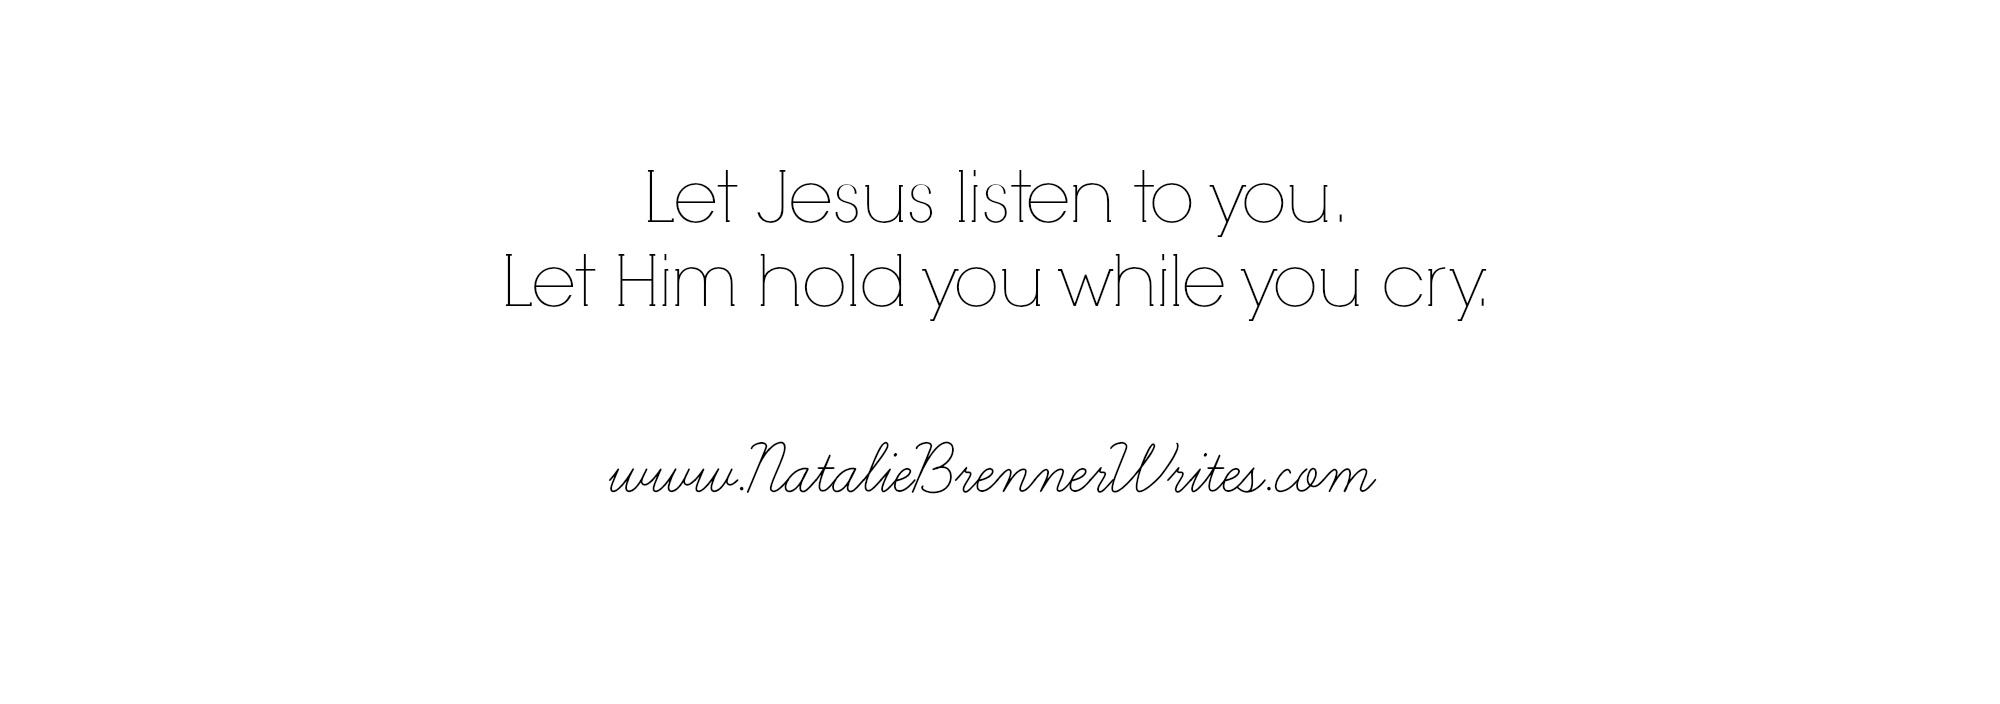 let jesus listen to you